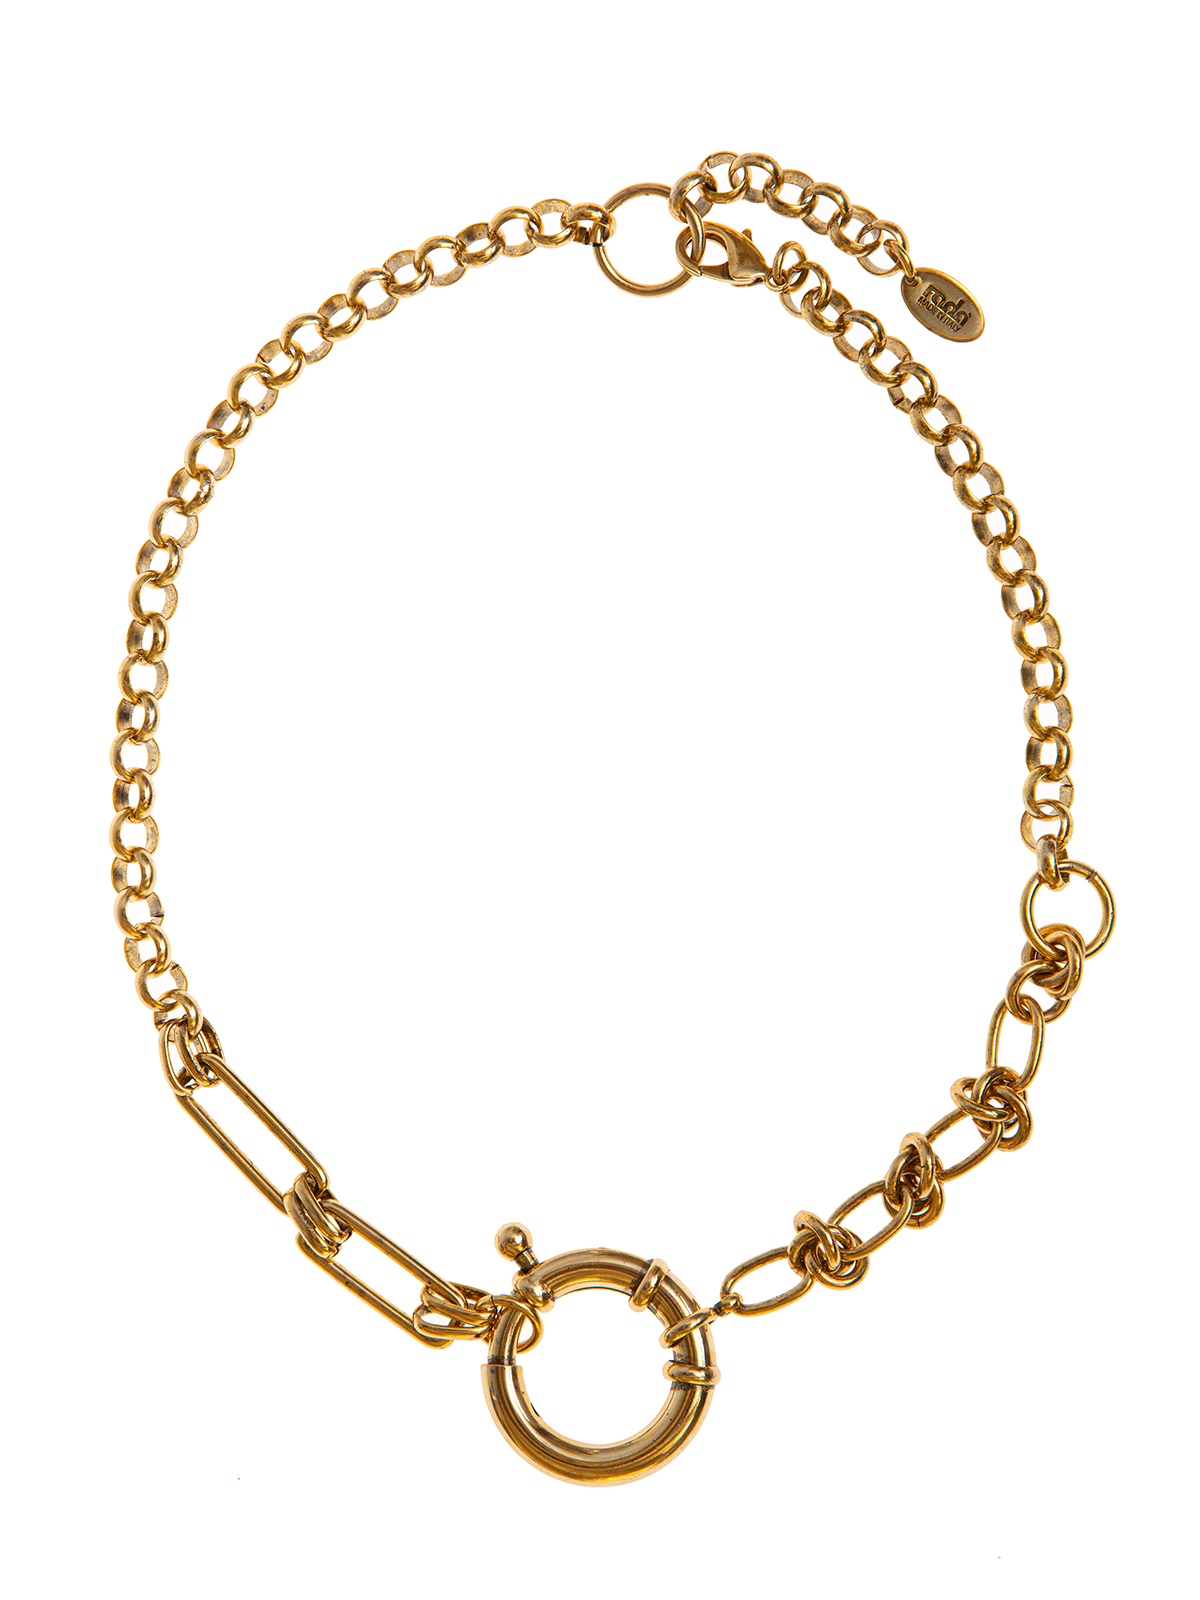 Mixed chain necklace embellished with maxi round clasp